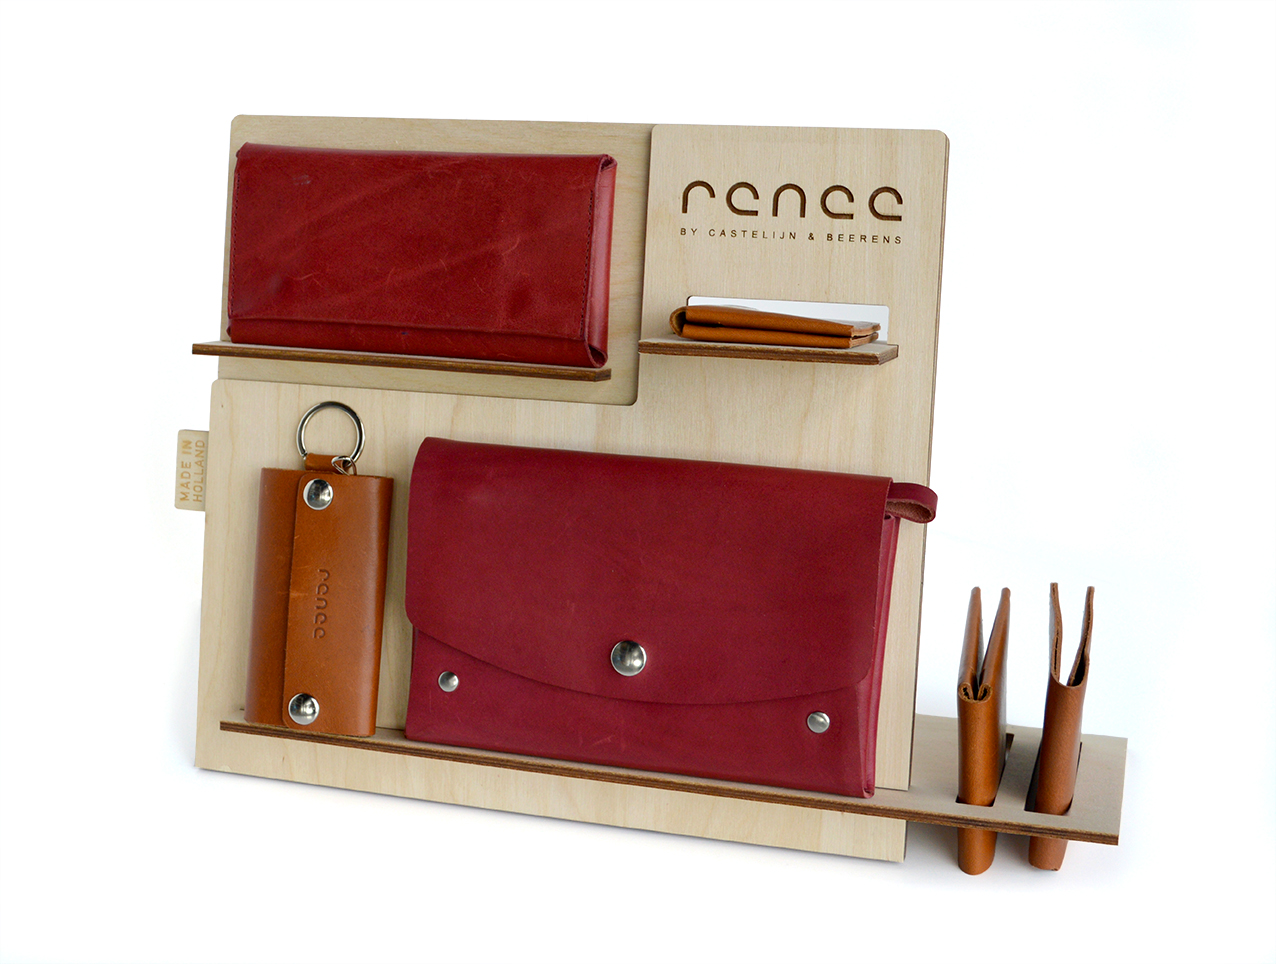 houten-display-renee